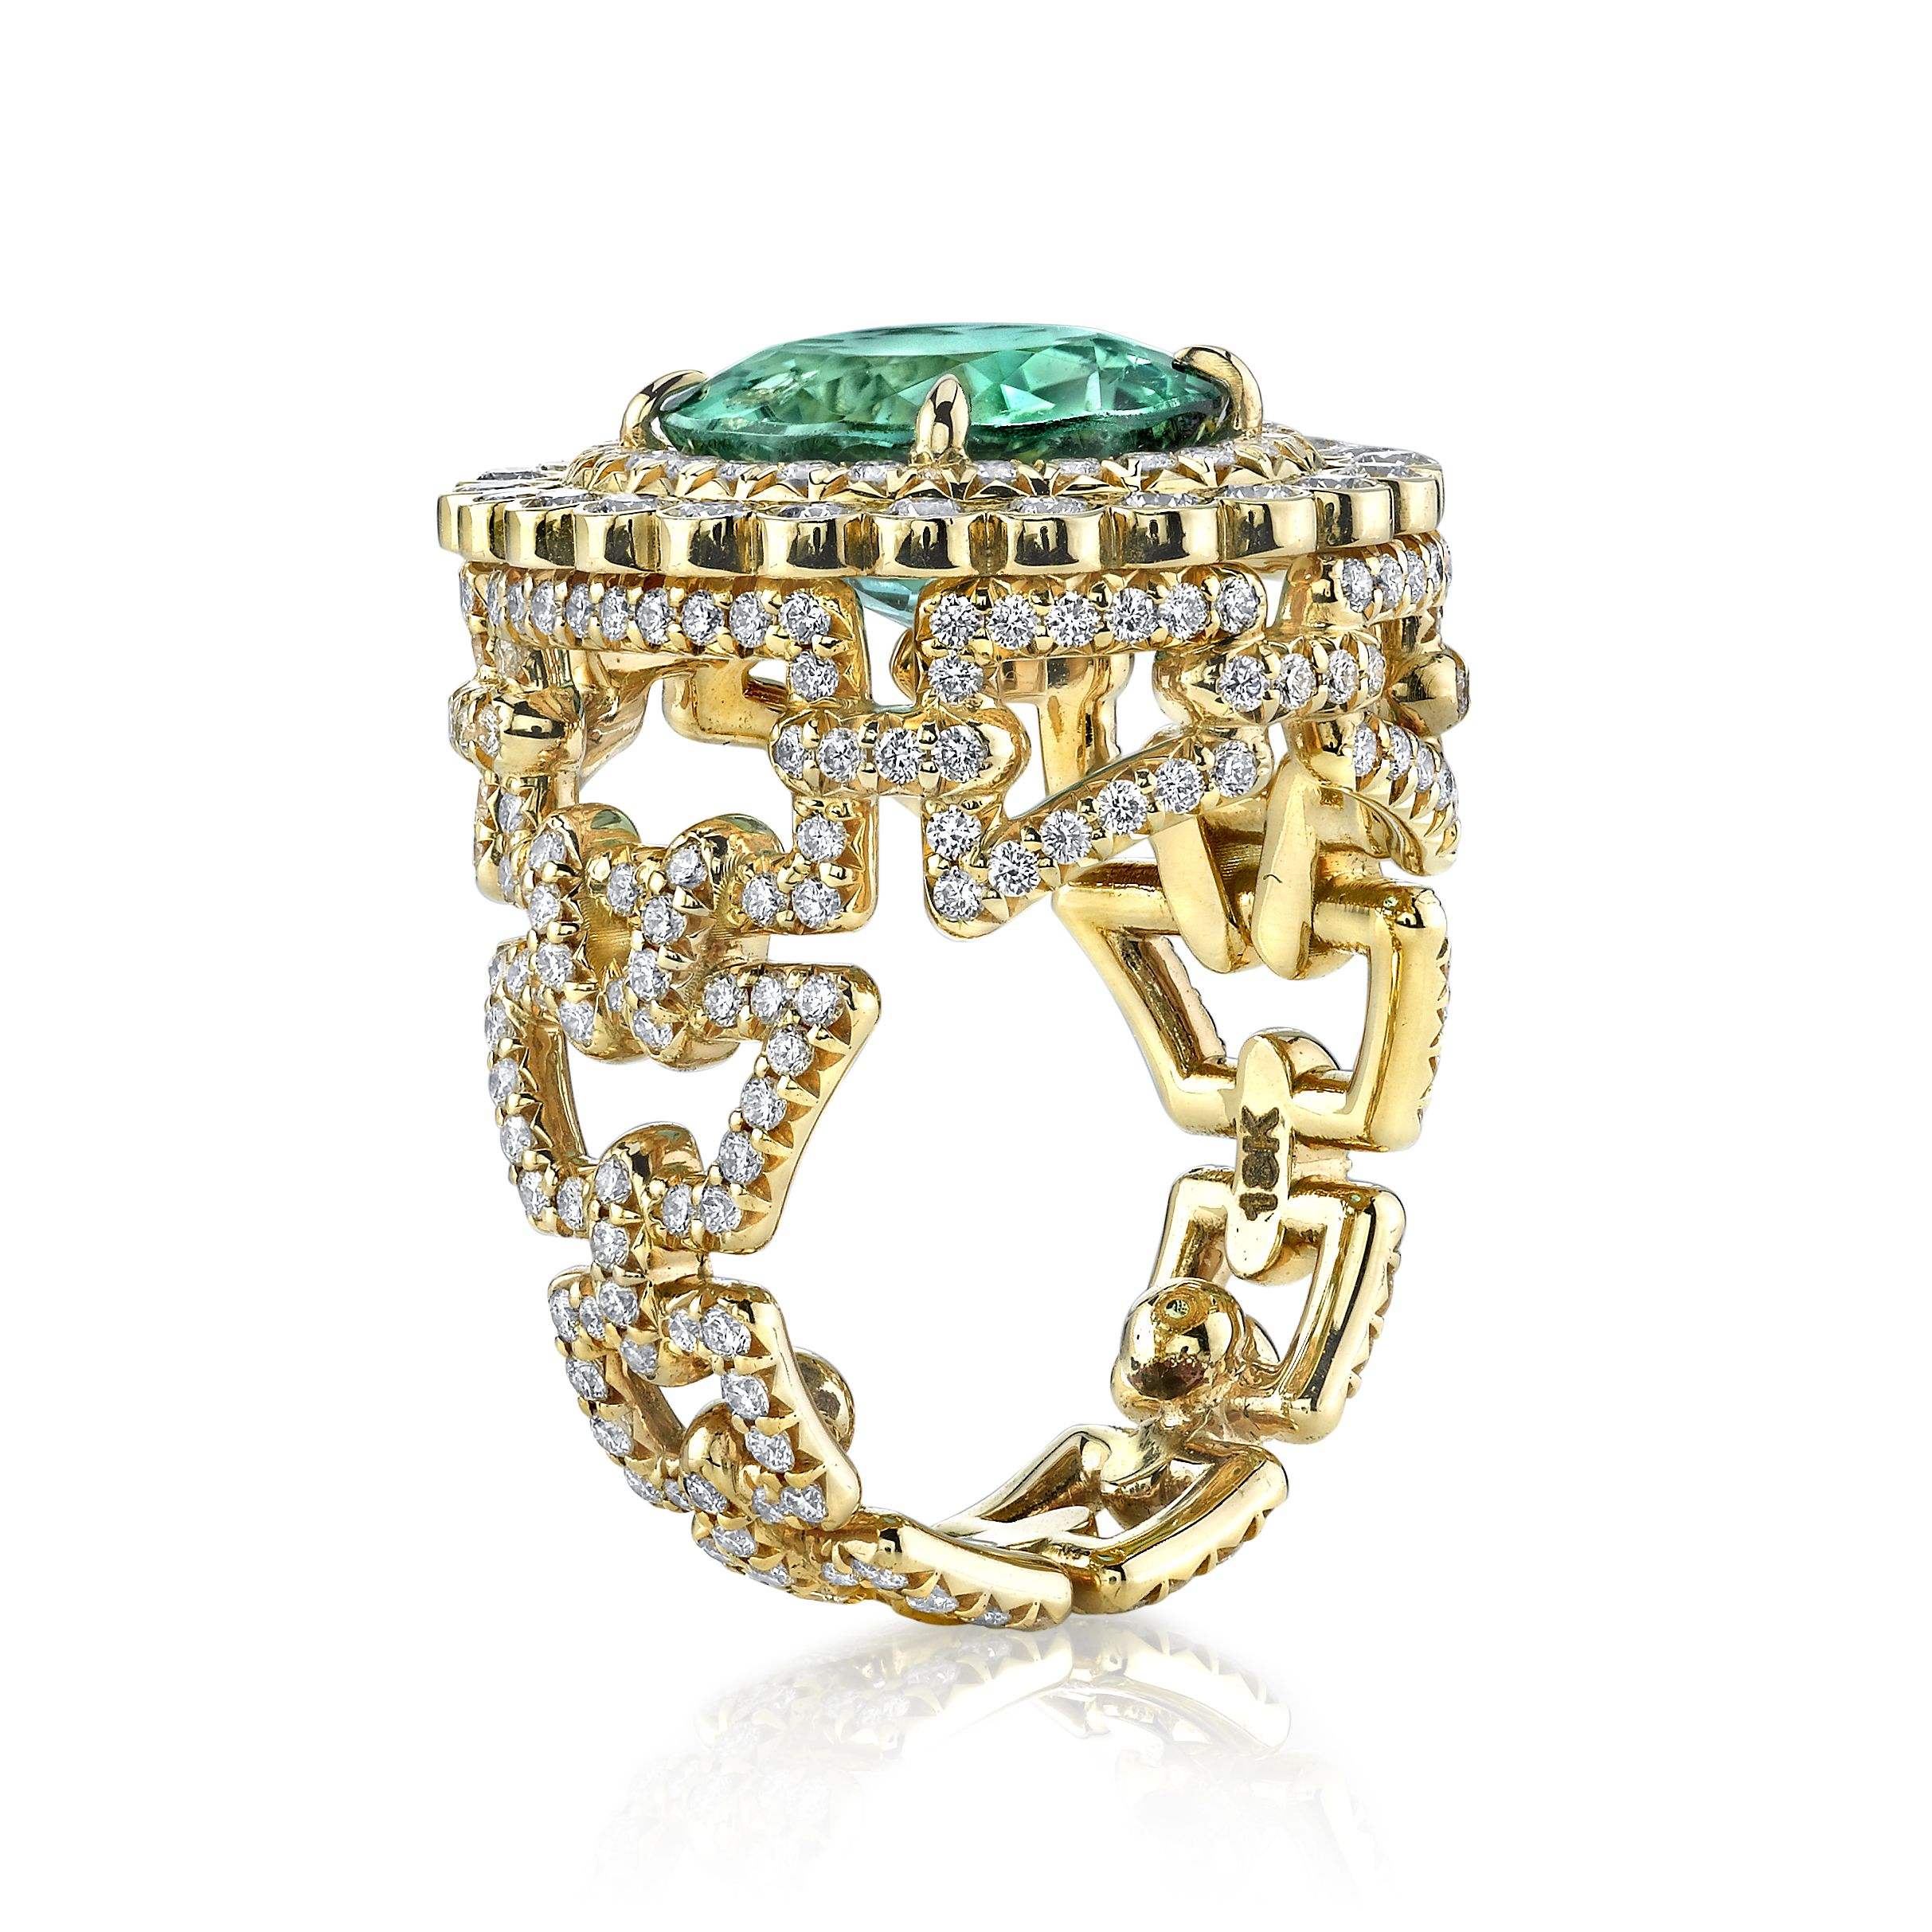 While the more unusual cuts of diamonds have been gathering momentum - 18k Gold And Diamond Brazilian Tourmaline Bracelet Ring By Erica Courtney